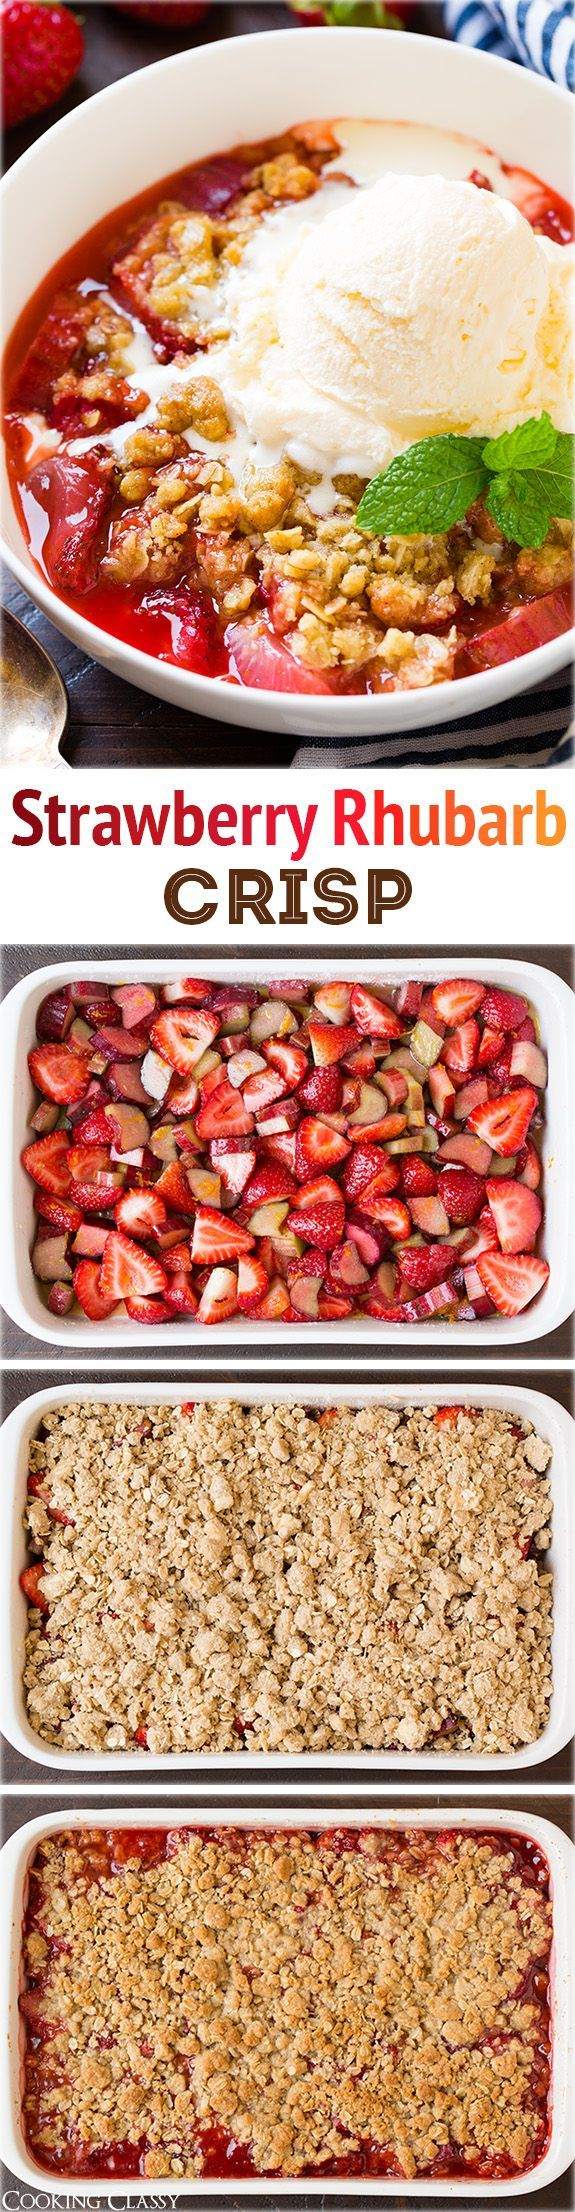 Strawberry Rhubarb Crisp - this is the perfect summer dessert! I could finish half the pan myself it's so good!!